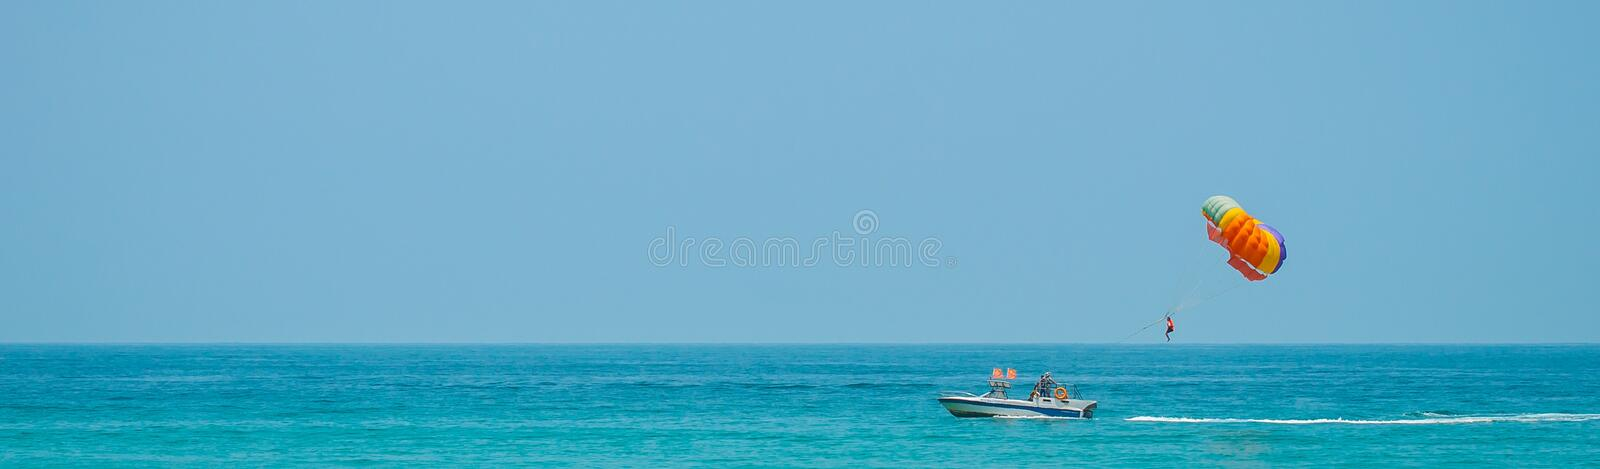 Parasailing. The man is towed on a boat and flies with a parachute over the water. Panorama royalty free stock photo